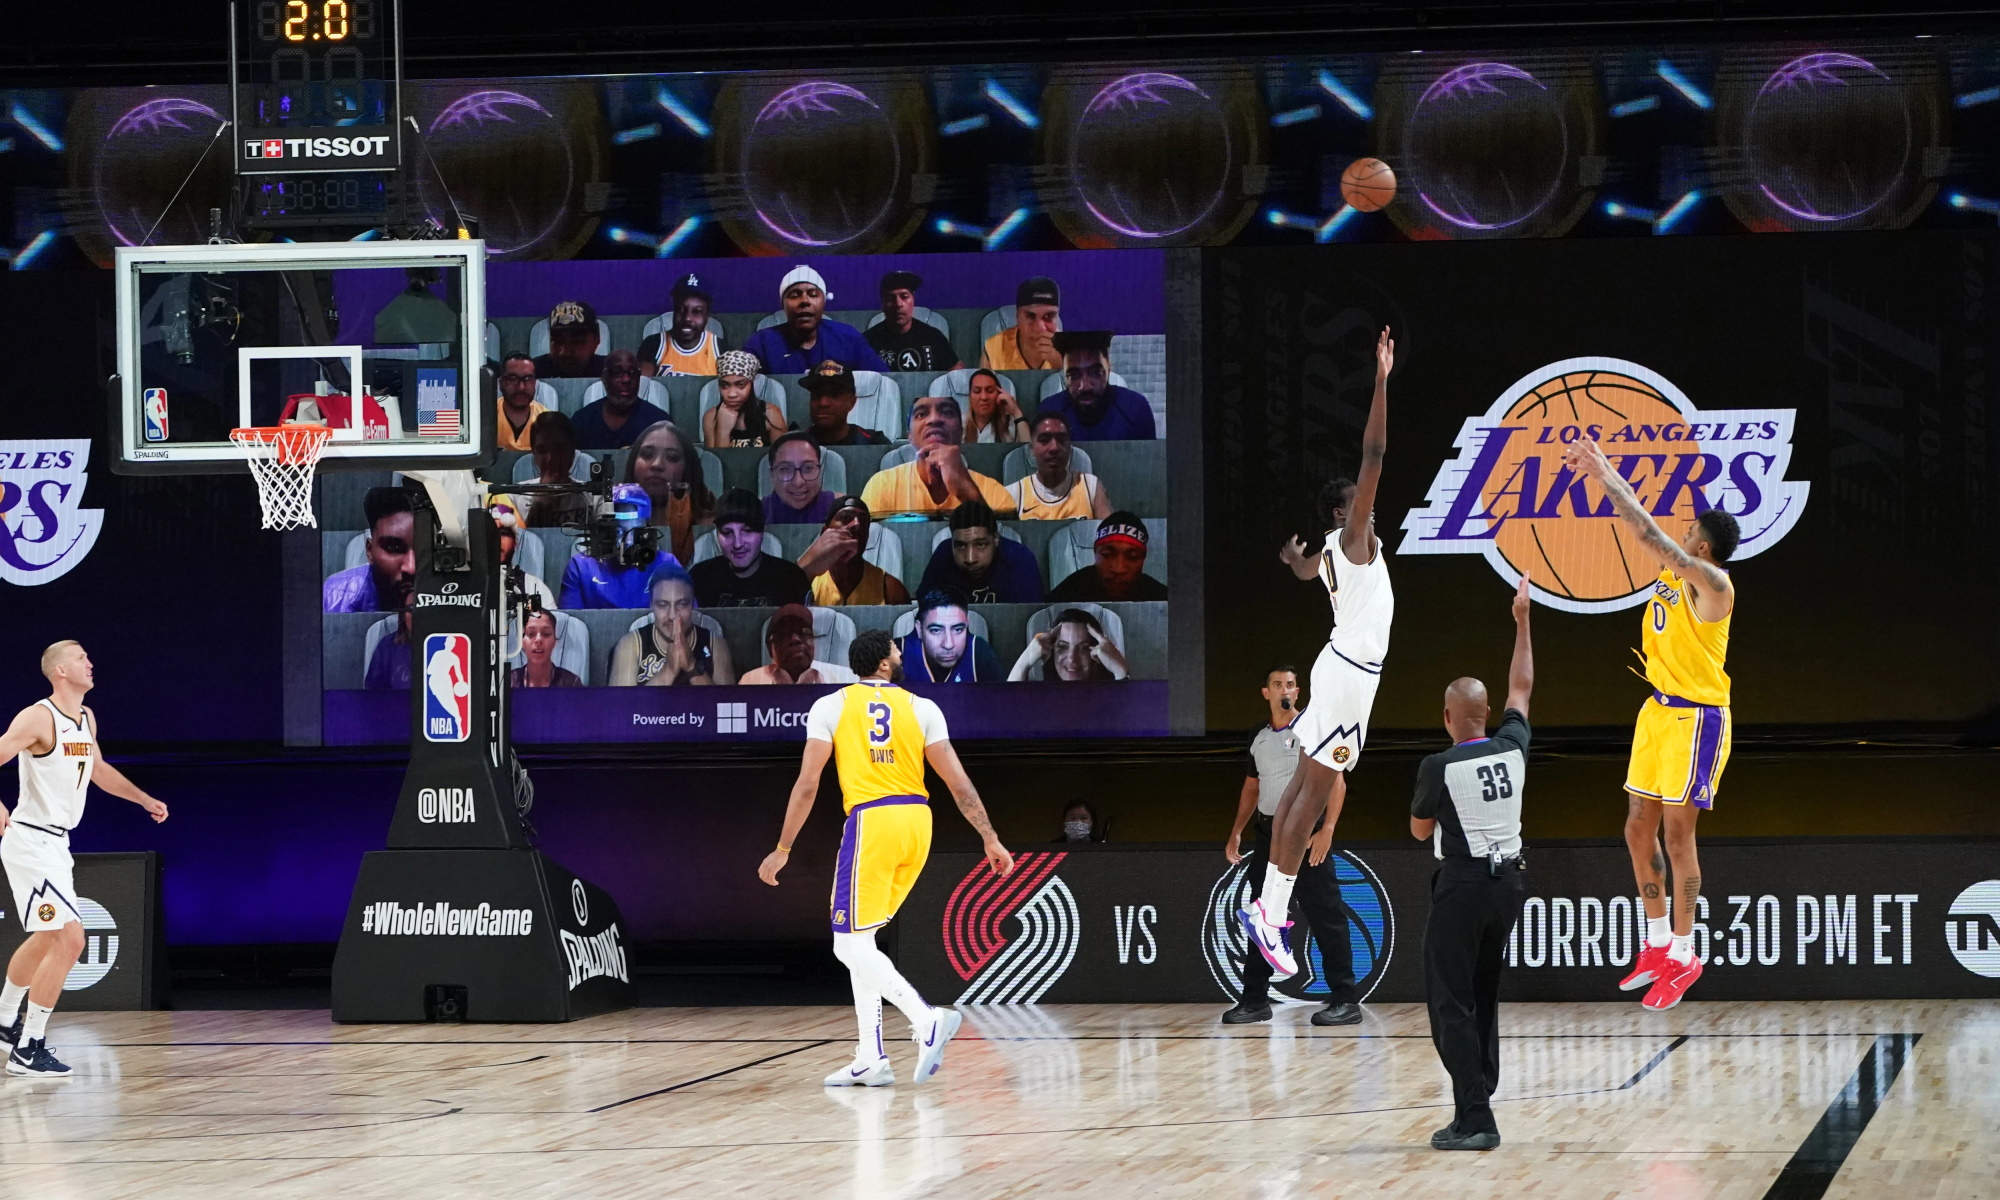 Kyle Kuzma #0 of the Los Angeles Lakers shoots a three-pointer to win the game against the Denver Nuggets on August 10, 2020